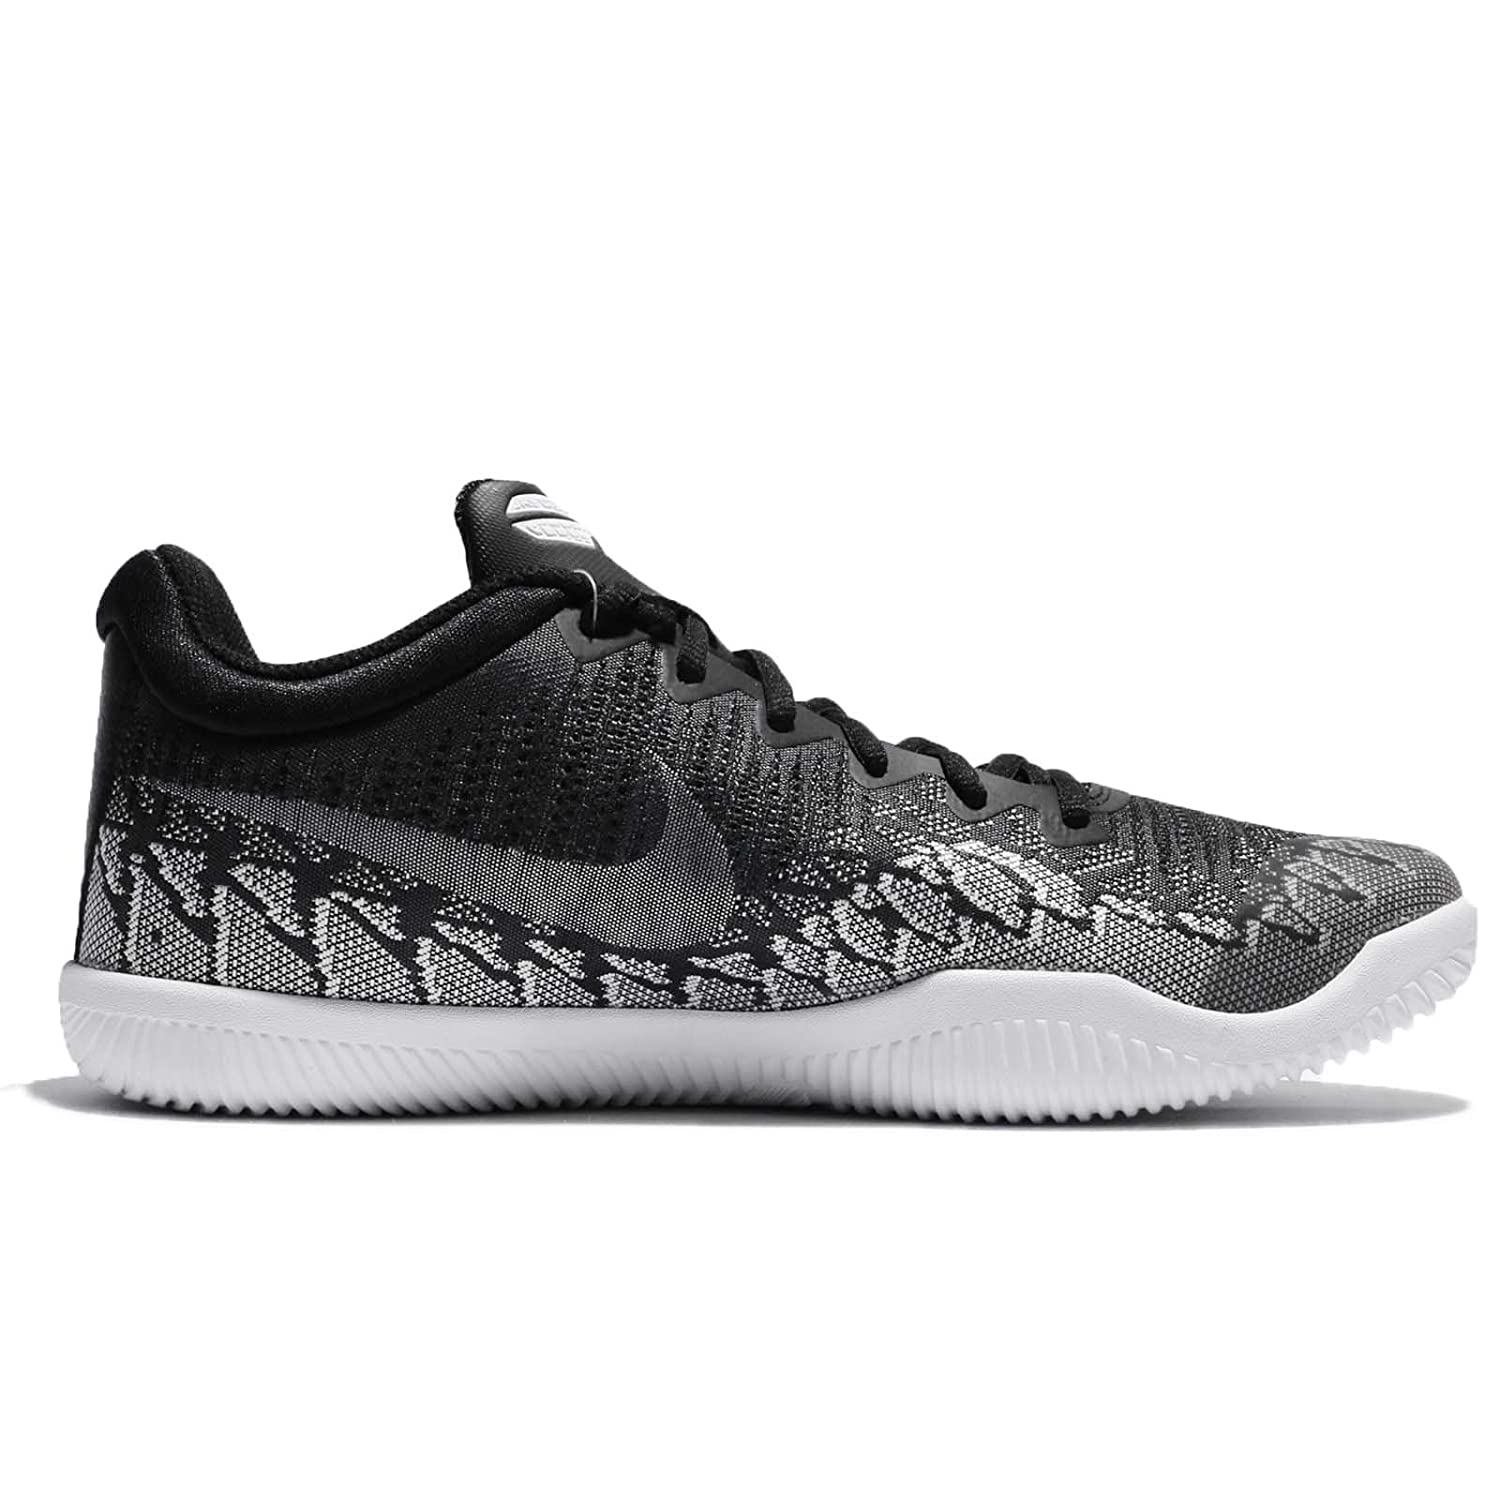 a08ddf0fe02 ... clearance amazon nike mens kobe mamba rage basketball shoes basketball  a4fb0 828f9